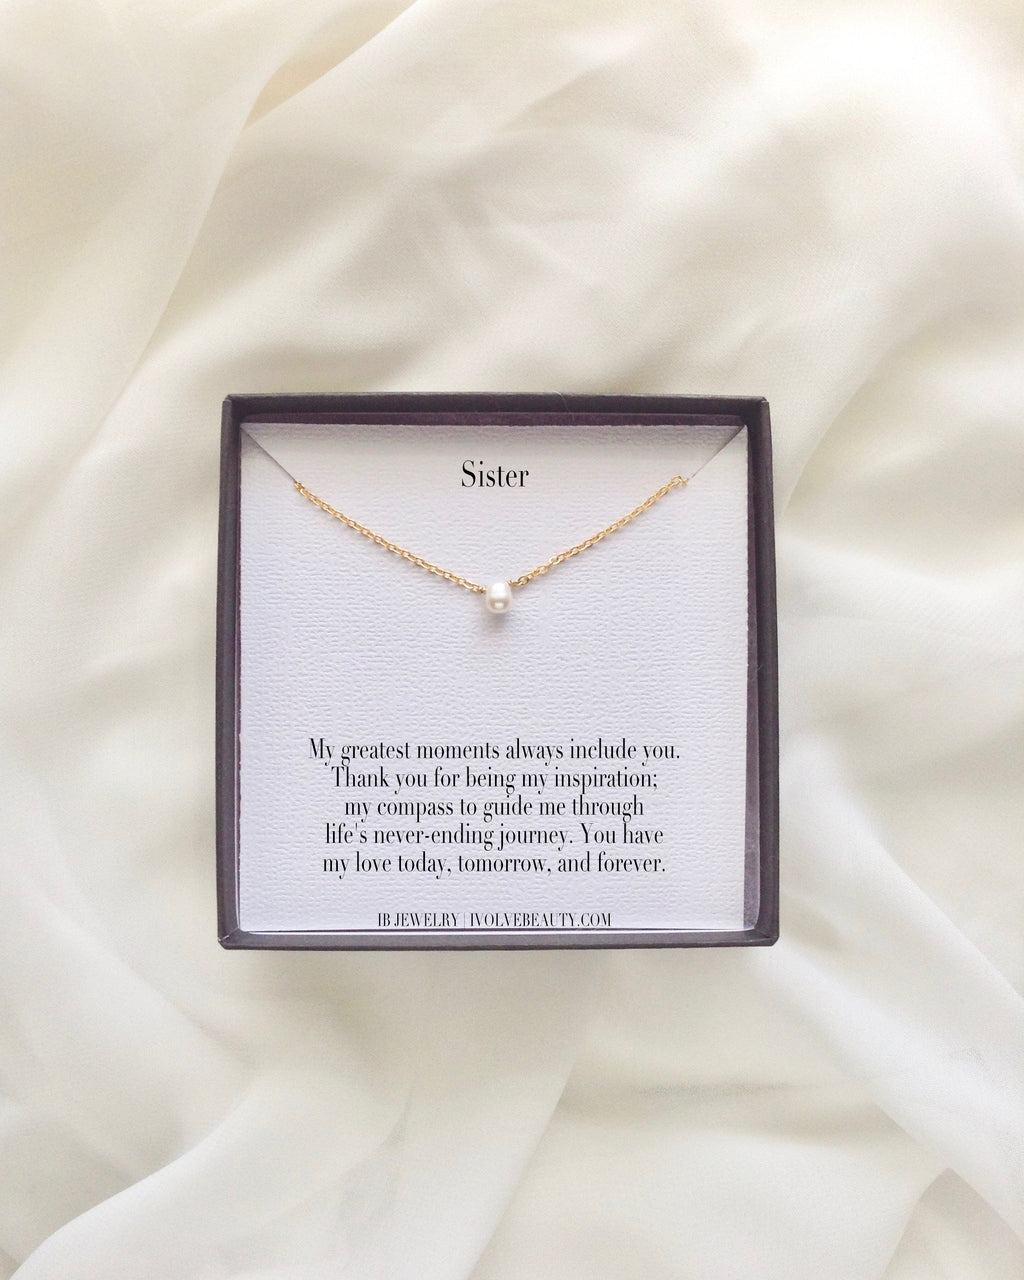 Sister Meaningful Necklace Gift | IB Jewelry